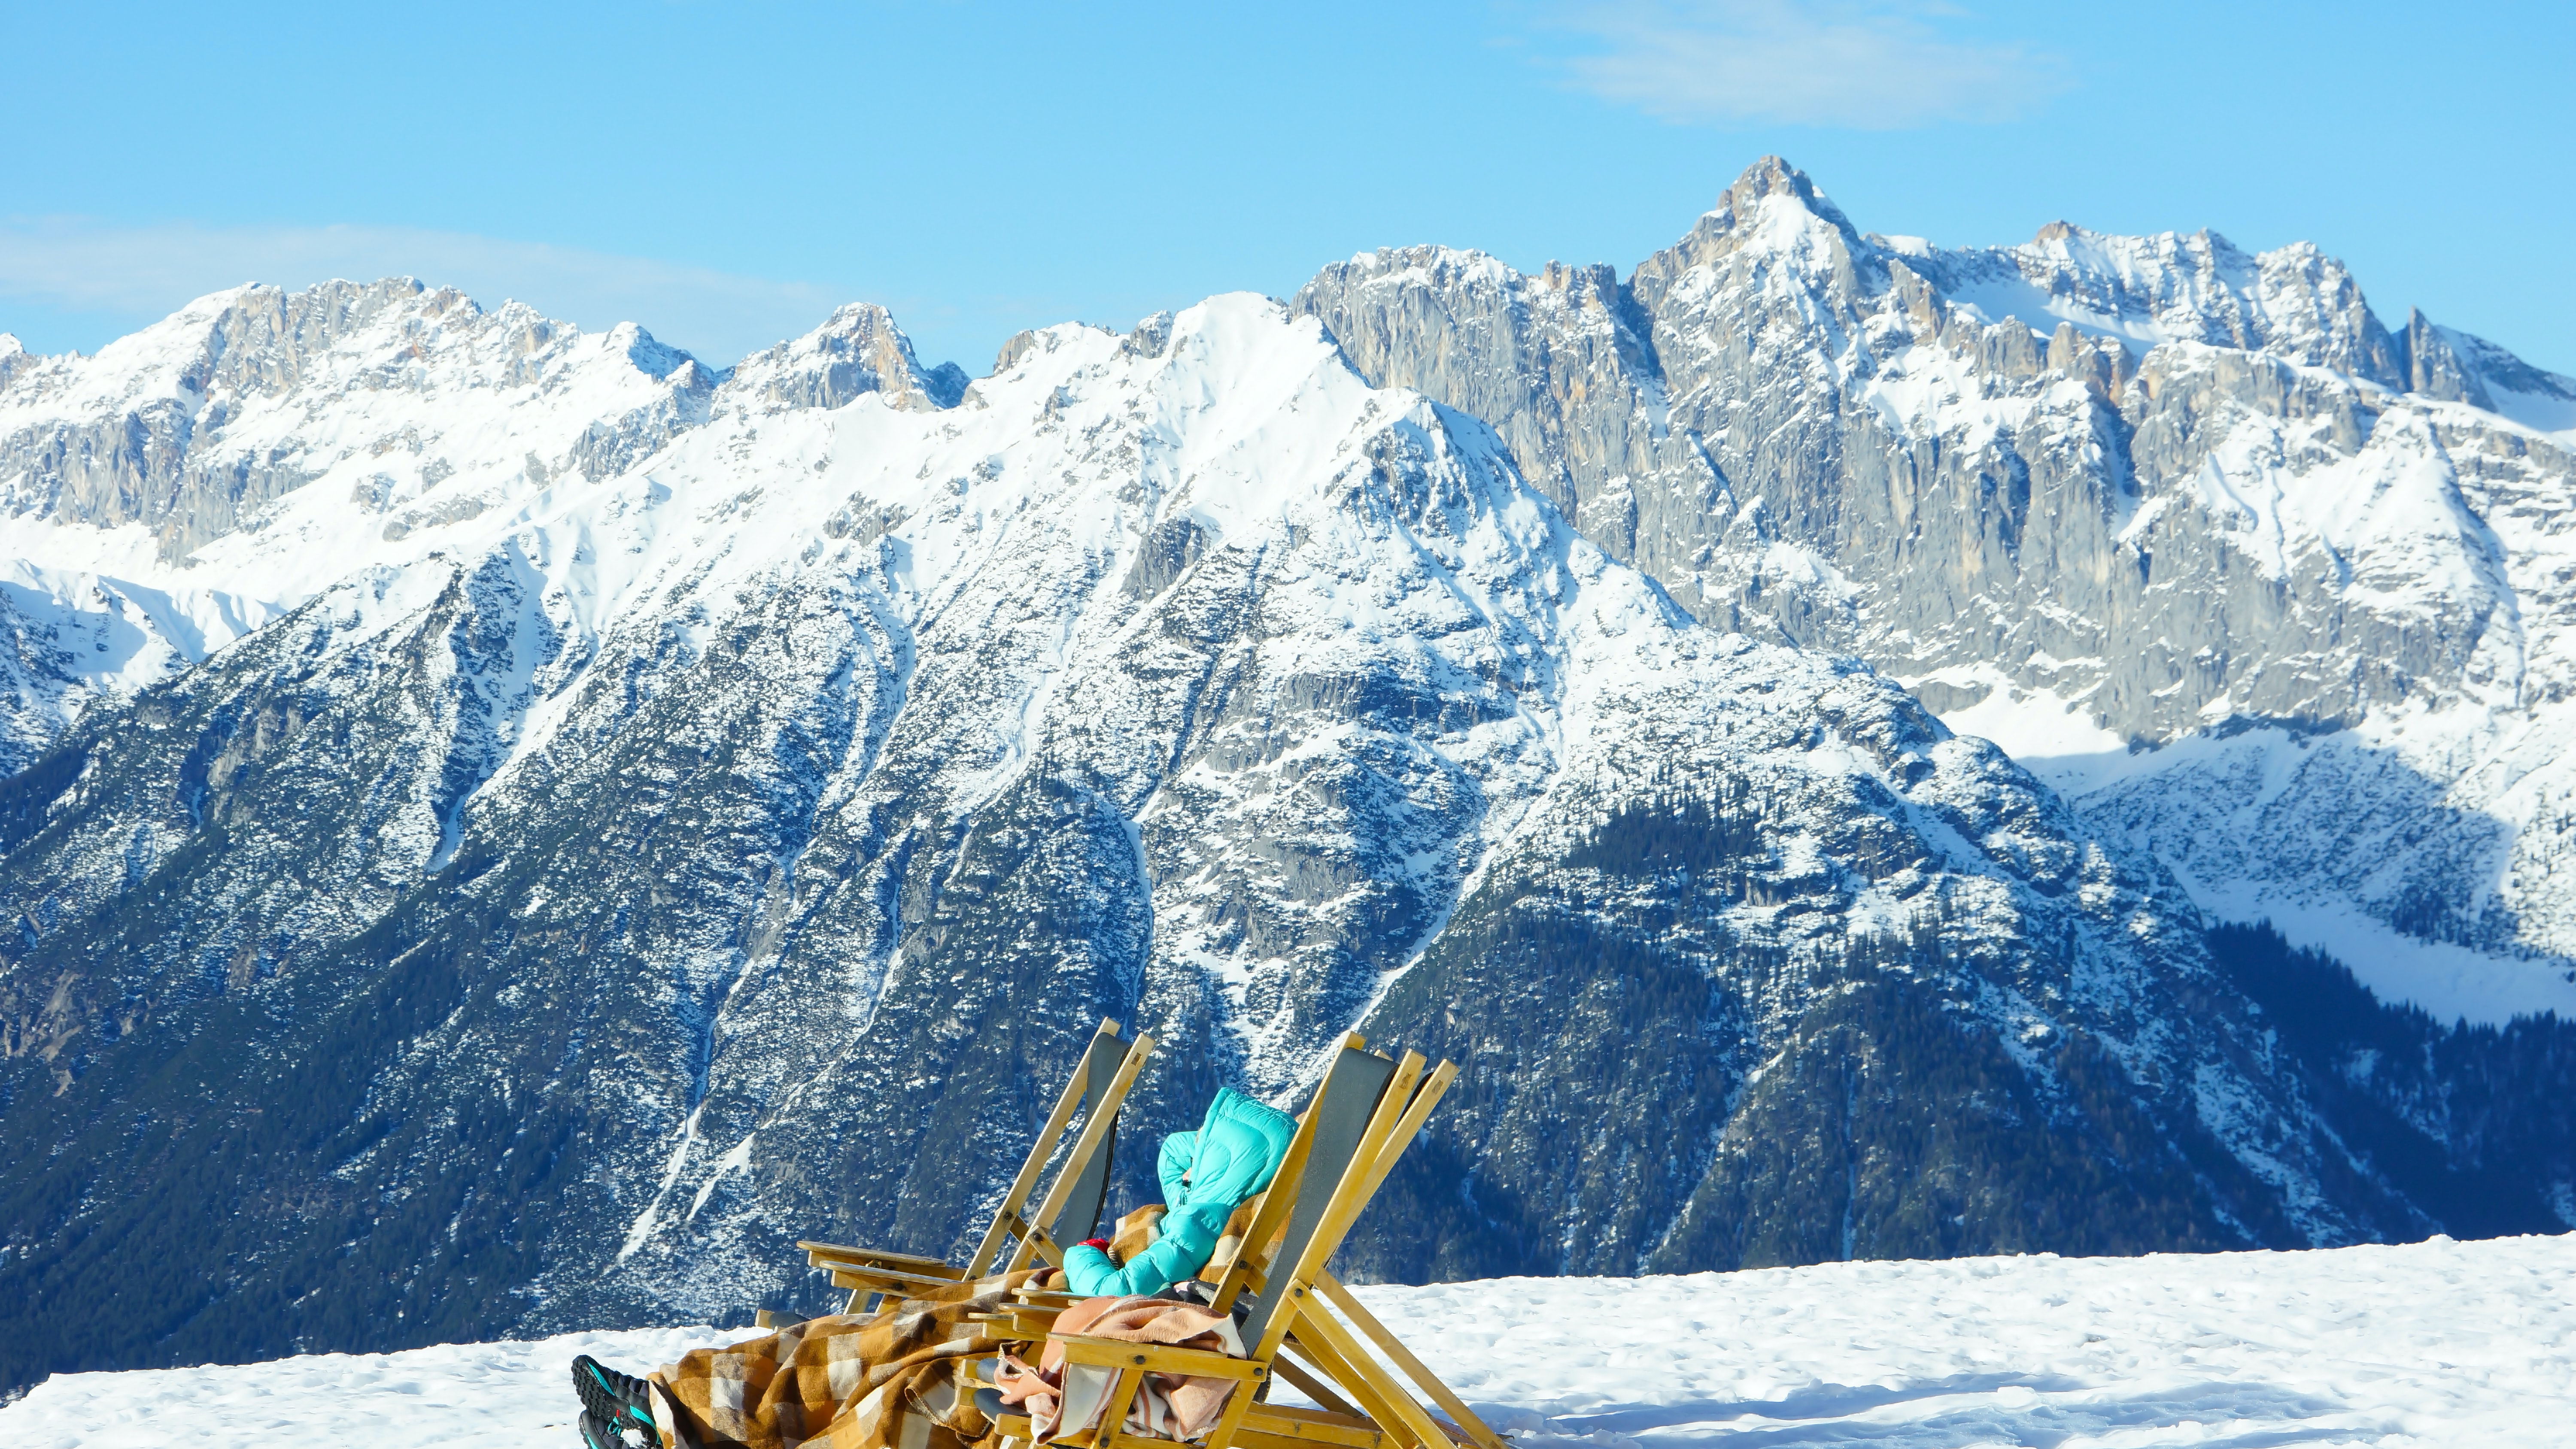 person sitting on adirondack chair on snow mountain